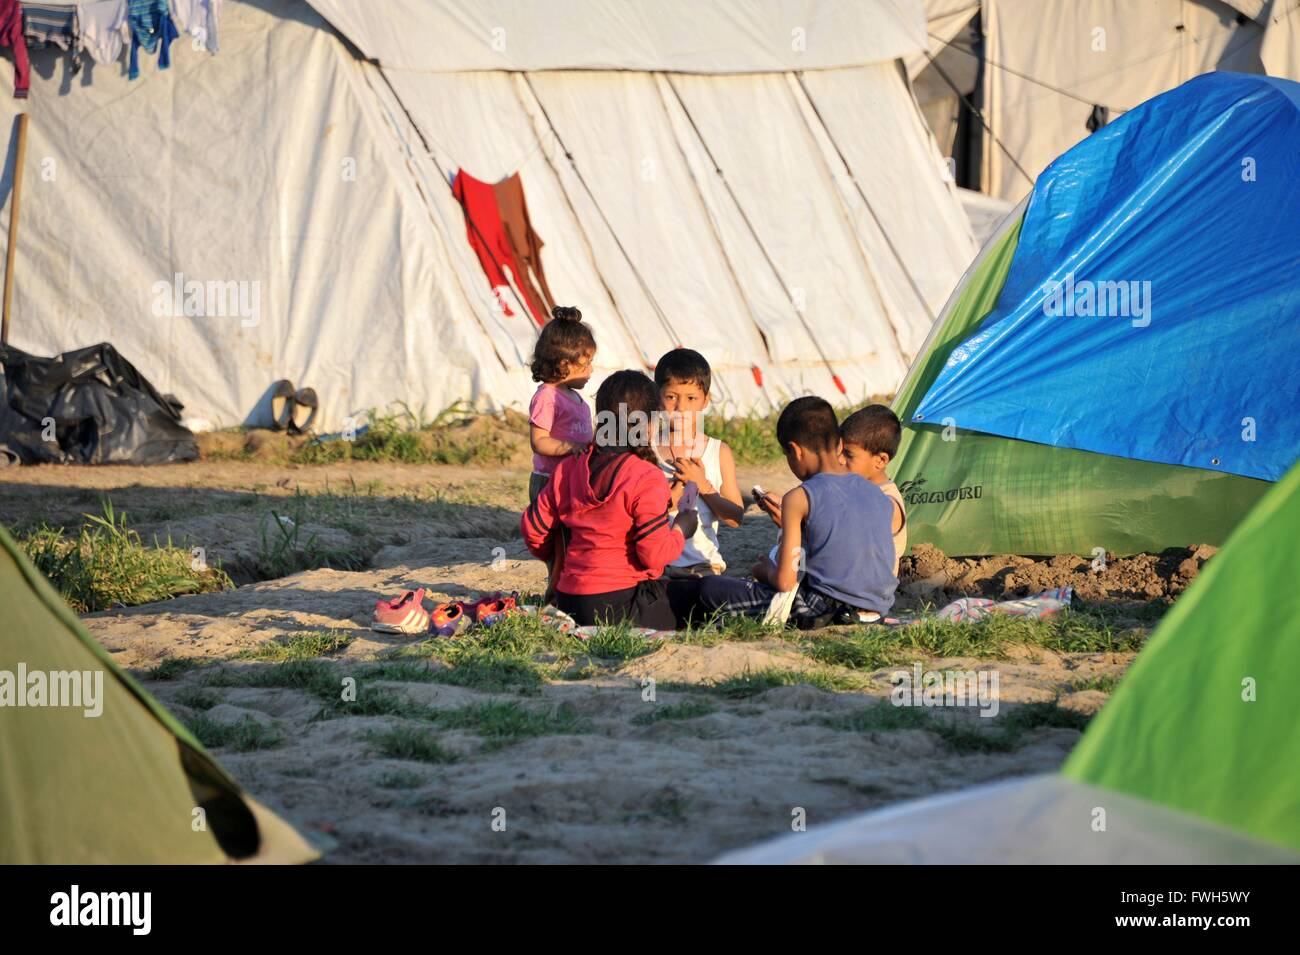 Dusk in Idomeni. Four kids playing cards between the tents - 31 March 2016 - Stock Image